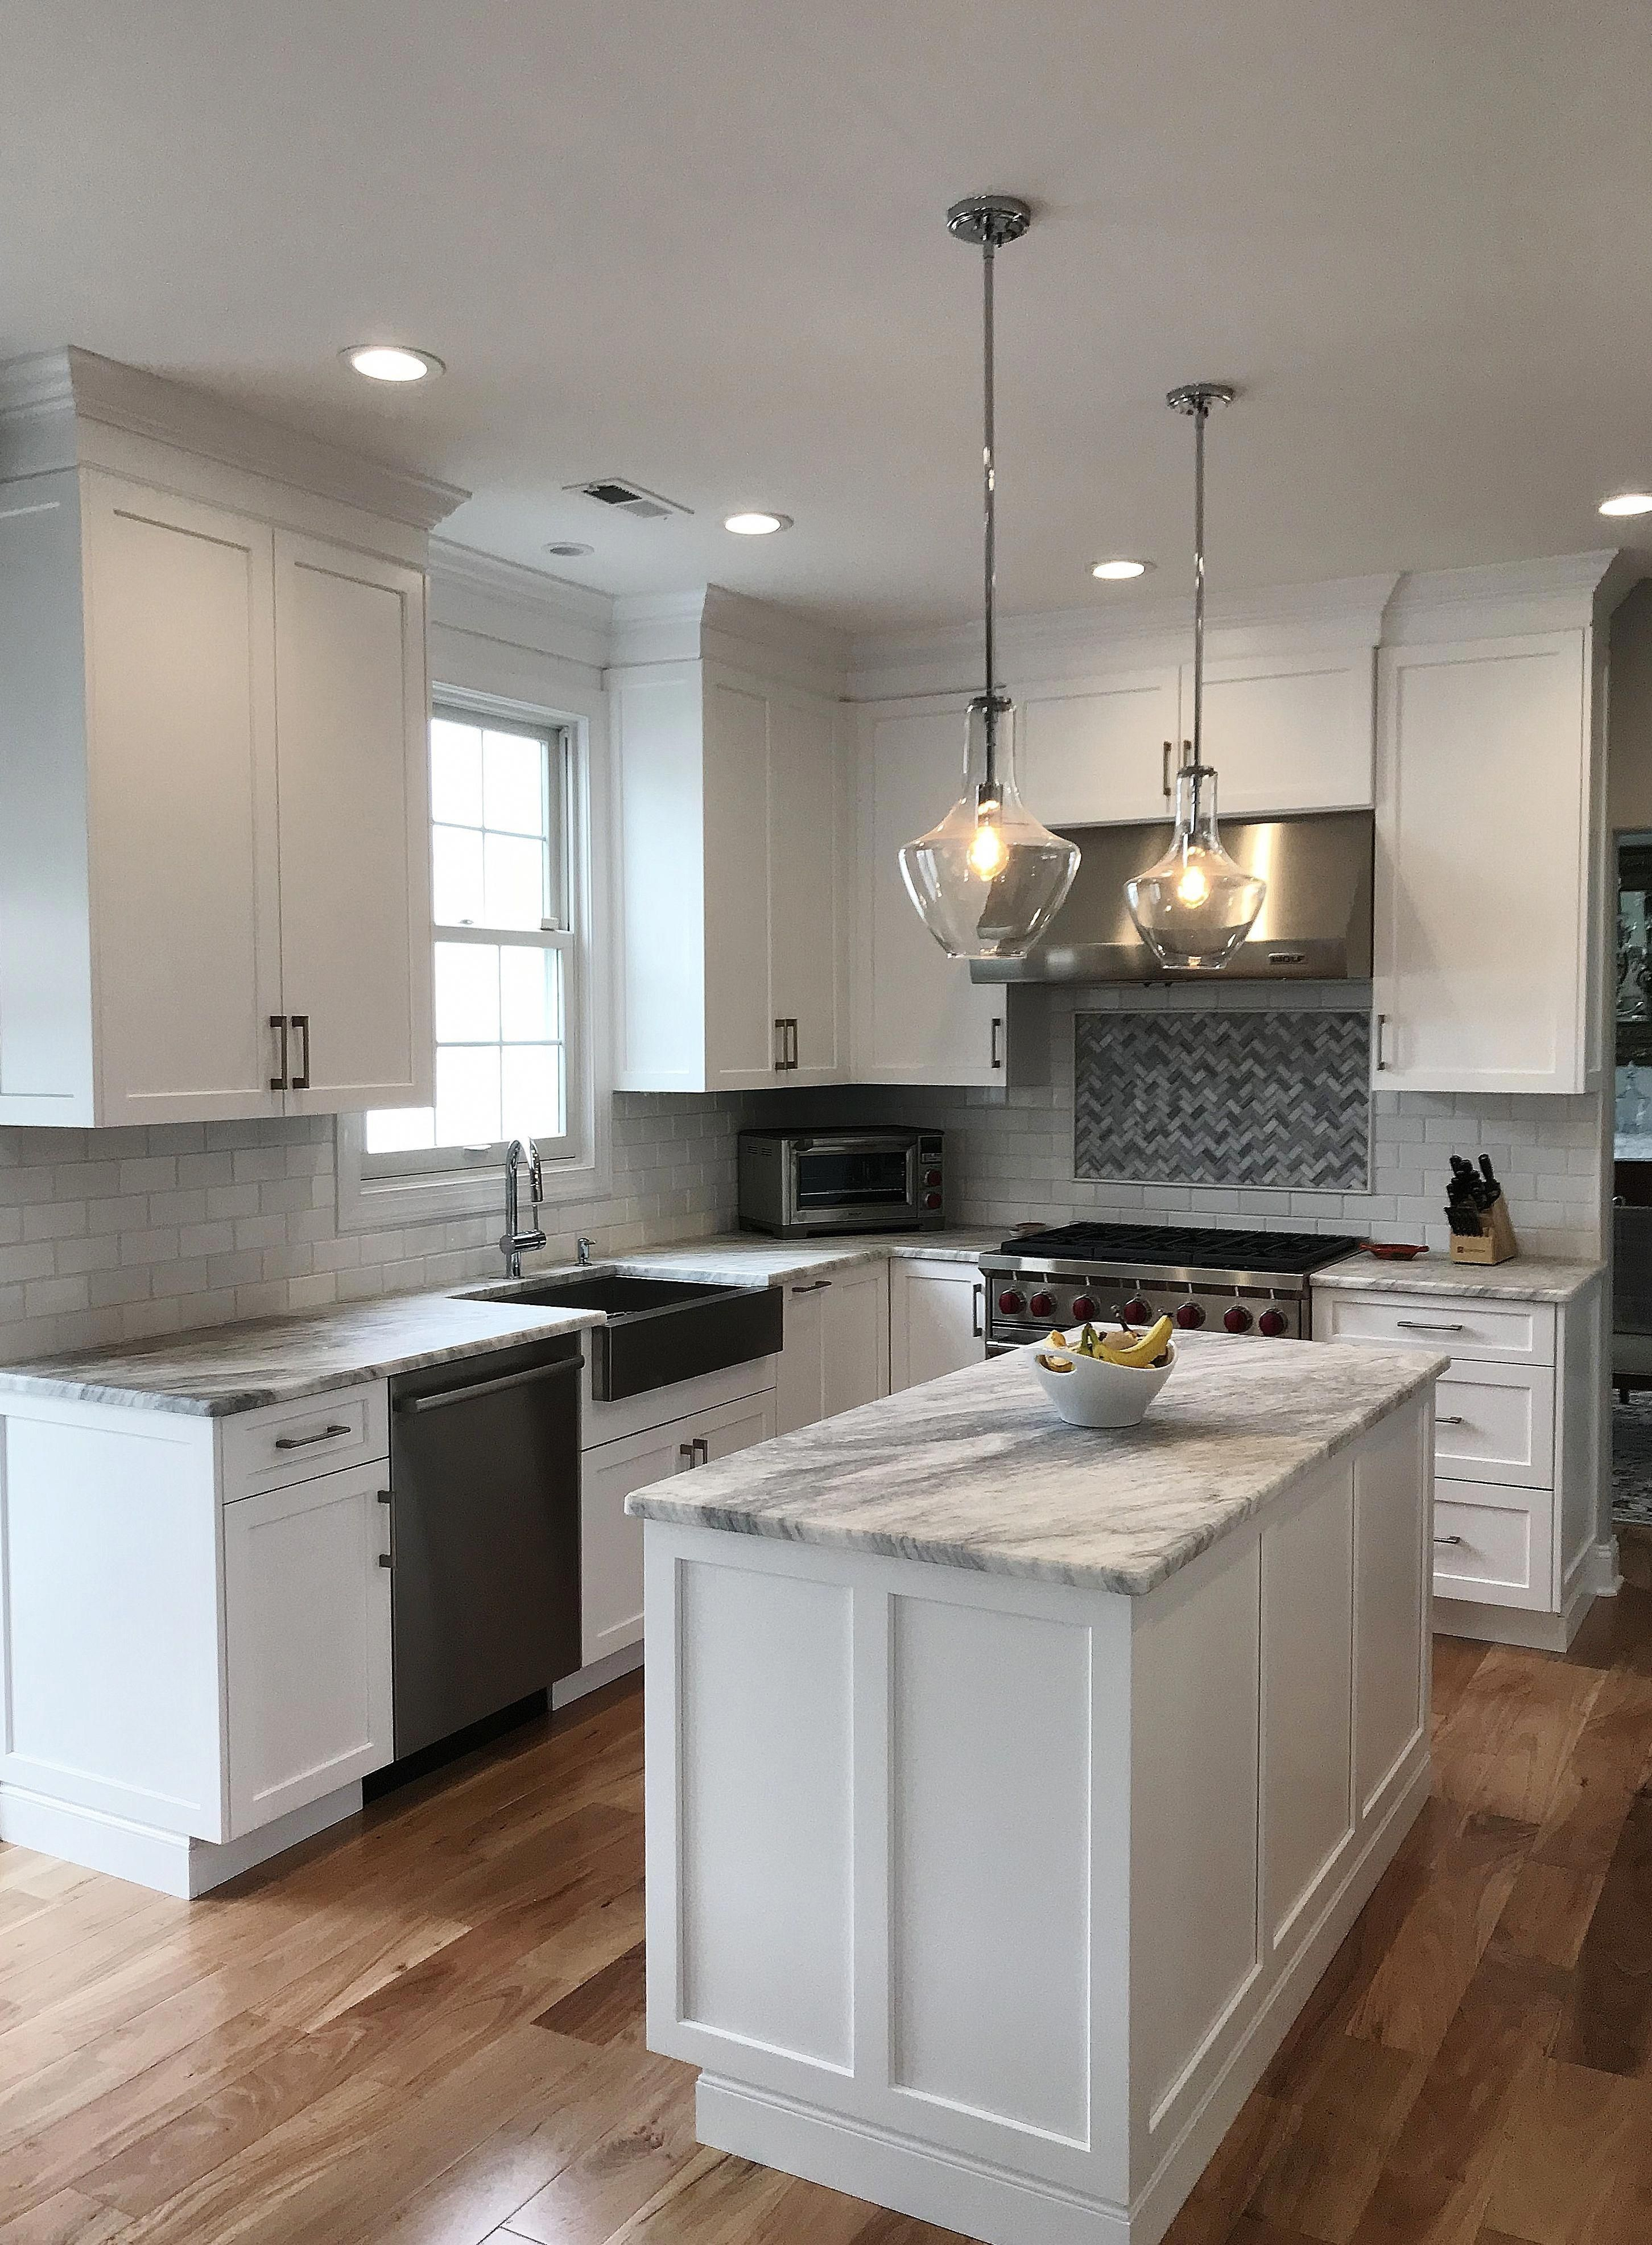 Choosing Kitchen Cabinets Abinets Form The Foundation Of The